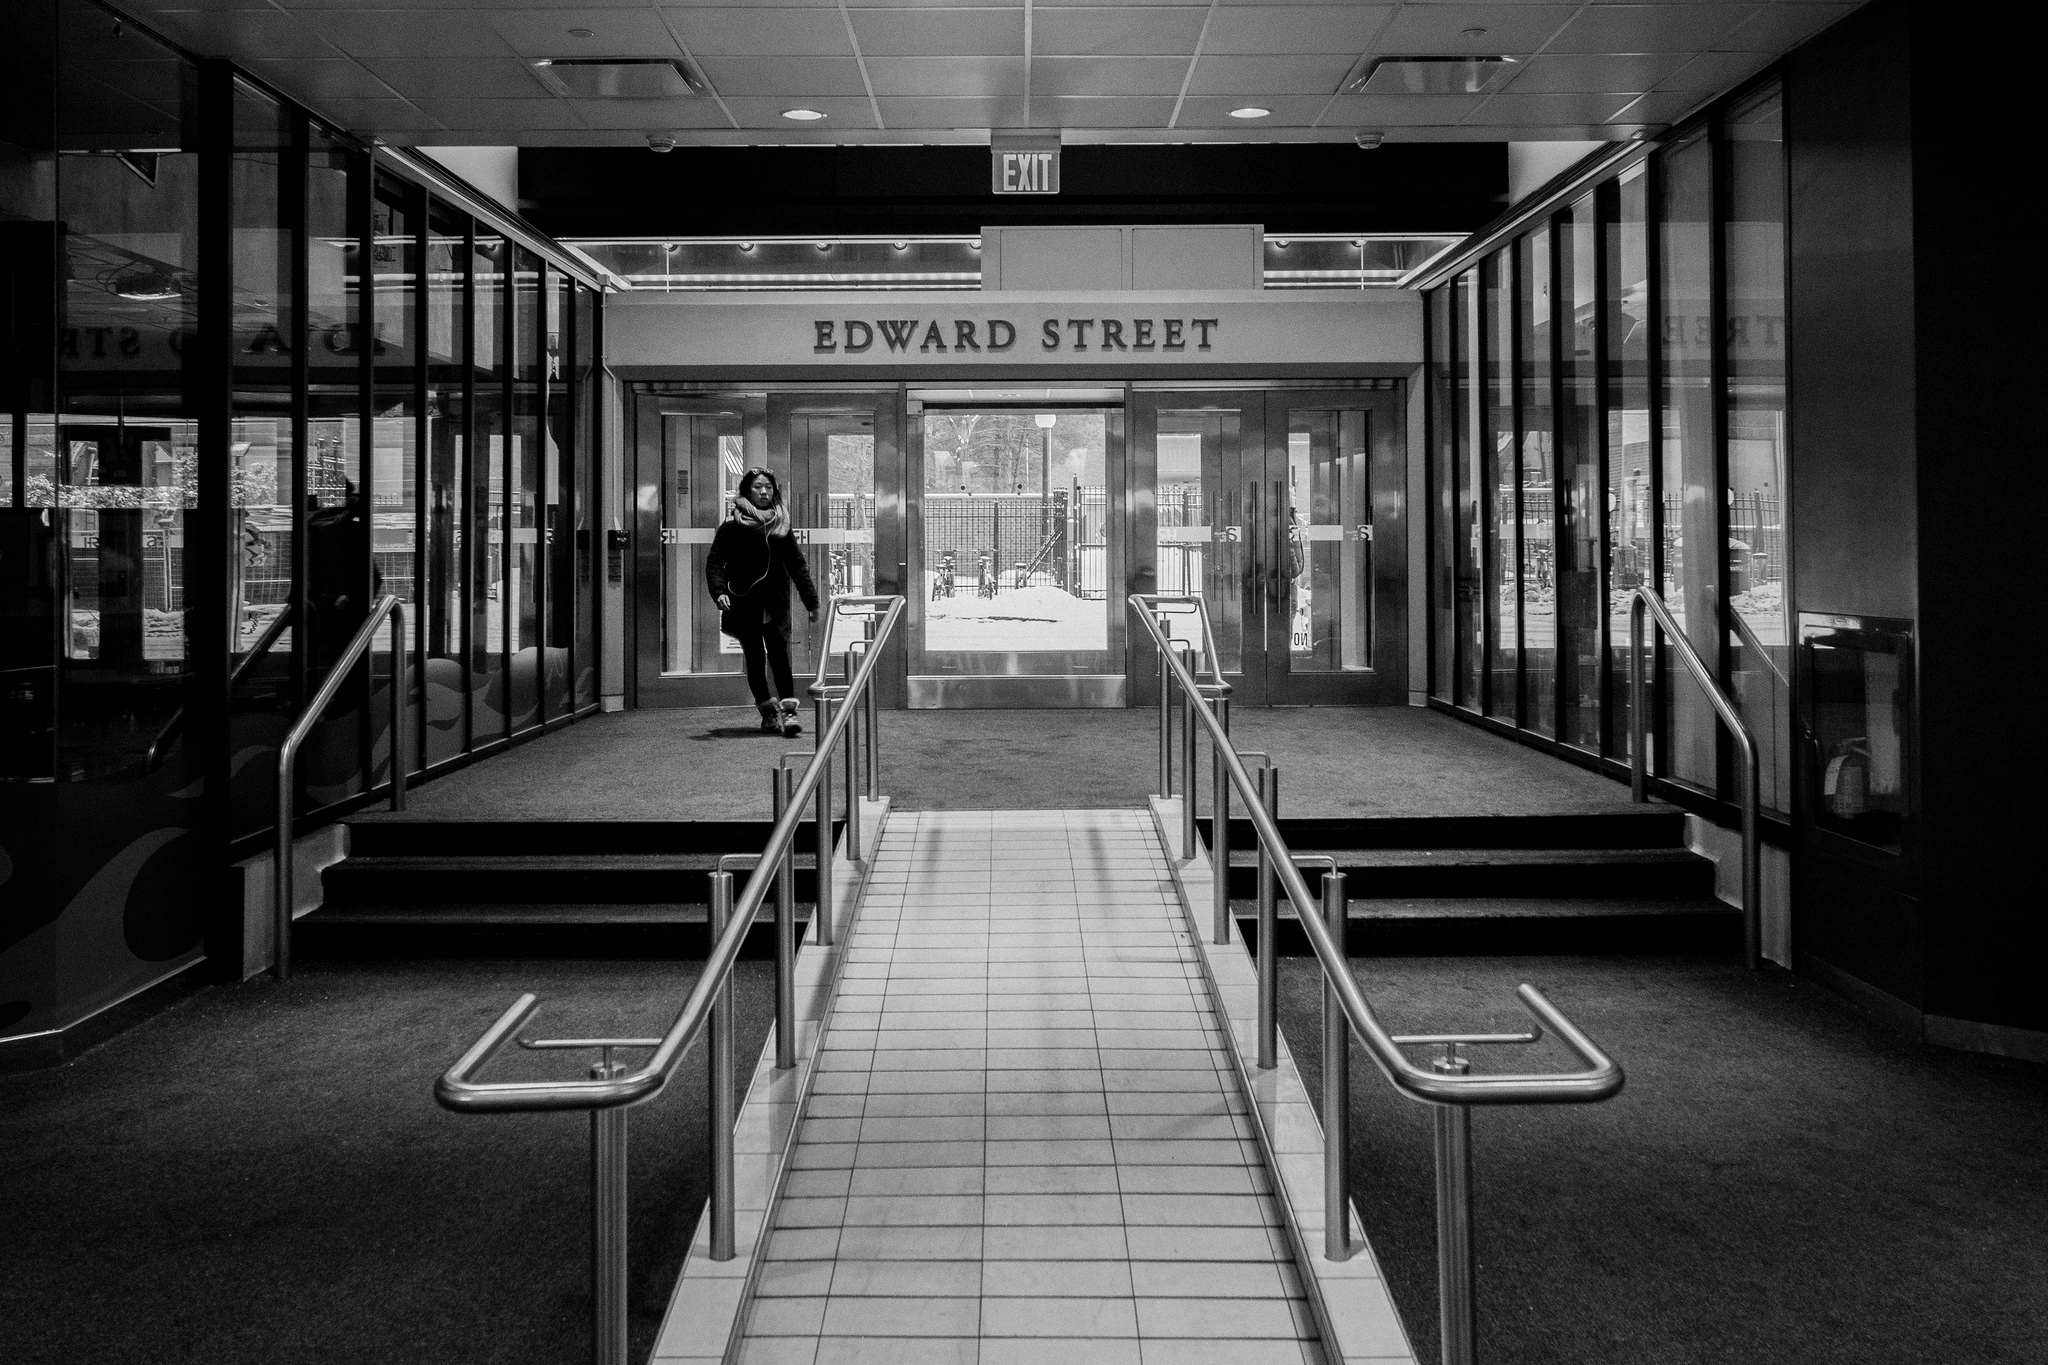 Exit to Edward Street (1/40s, f/5.6, ISO1600)